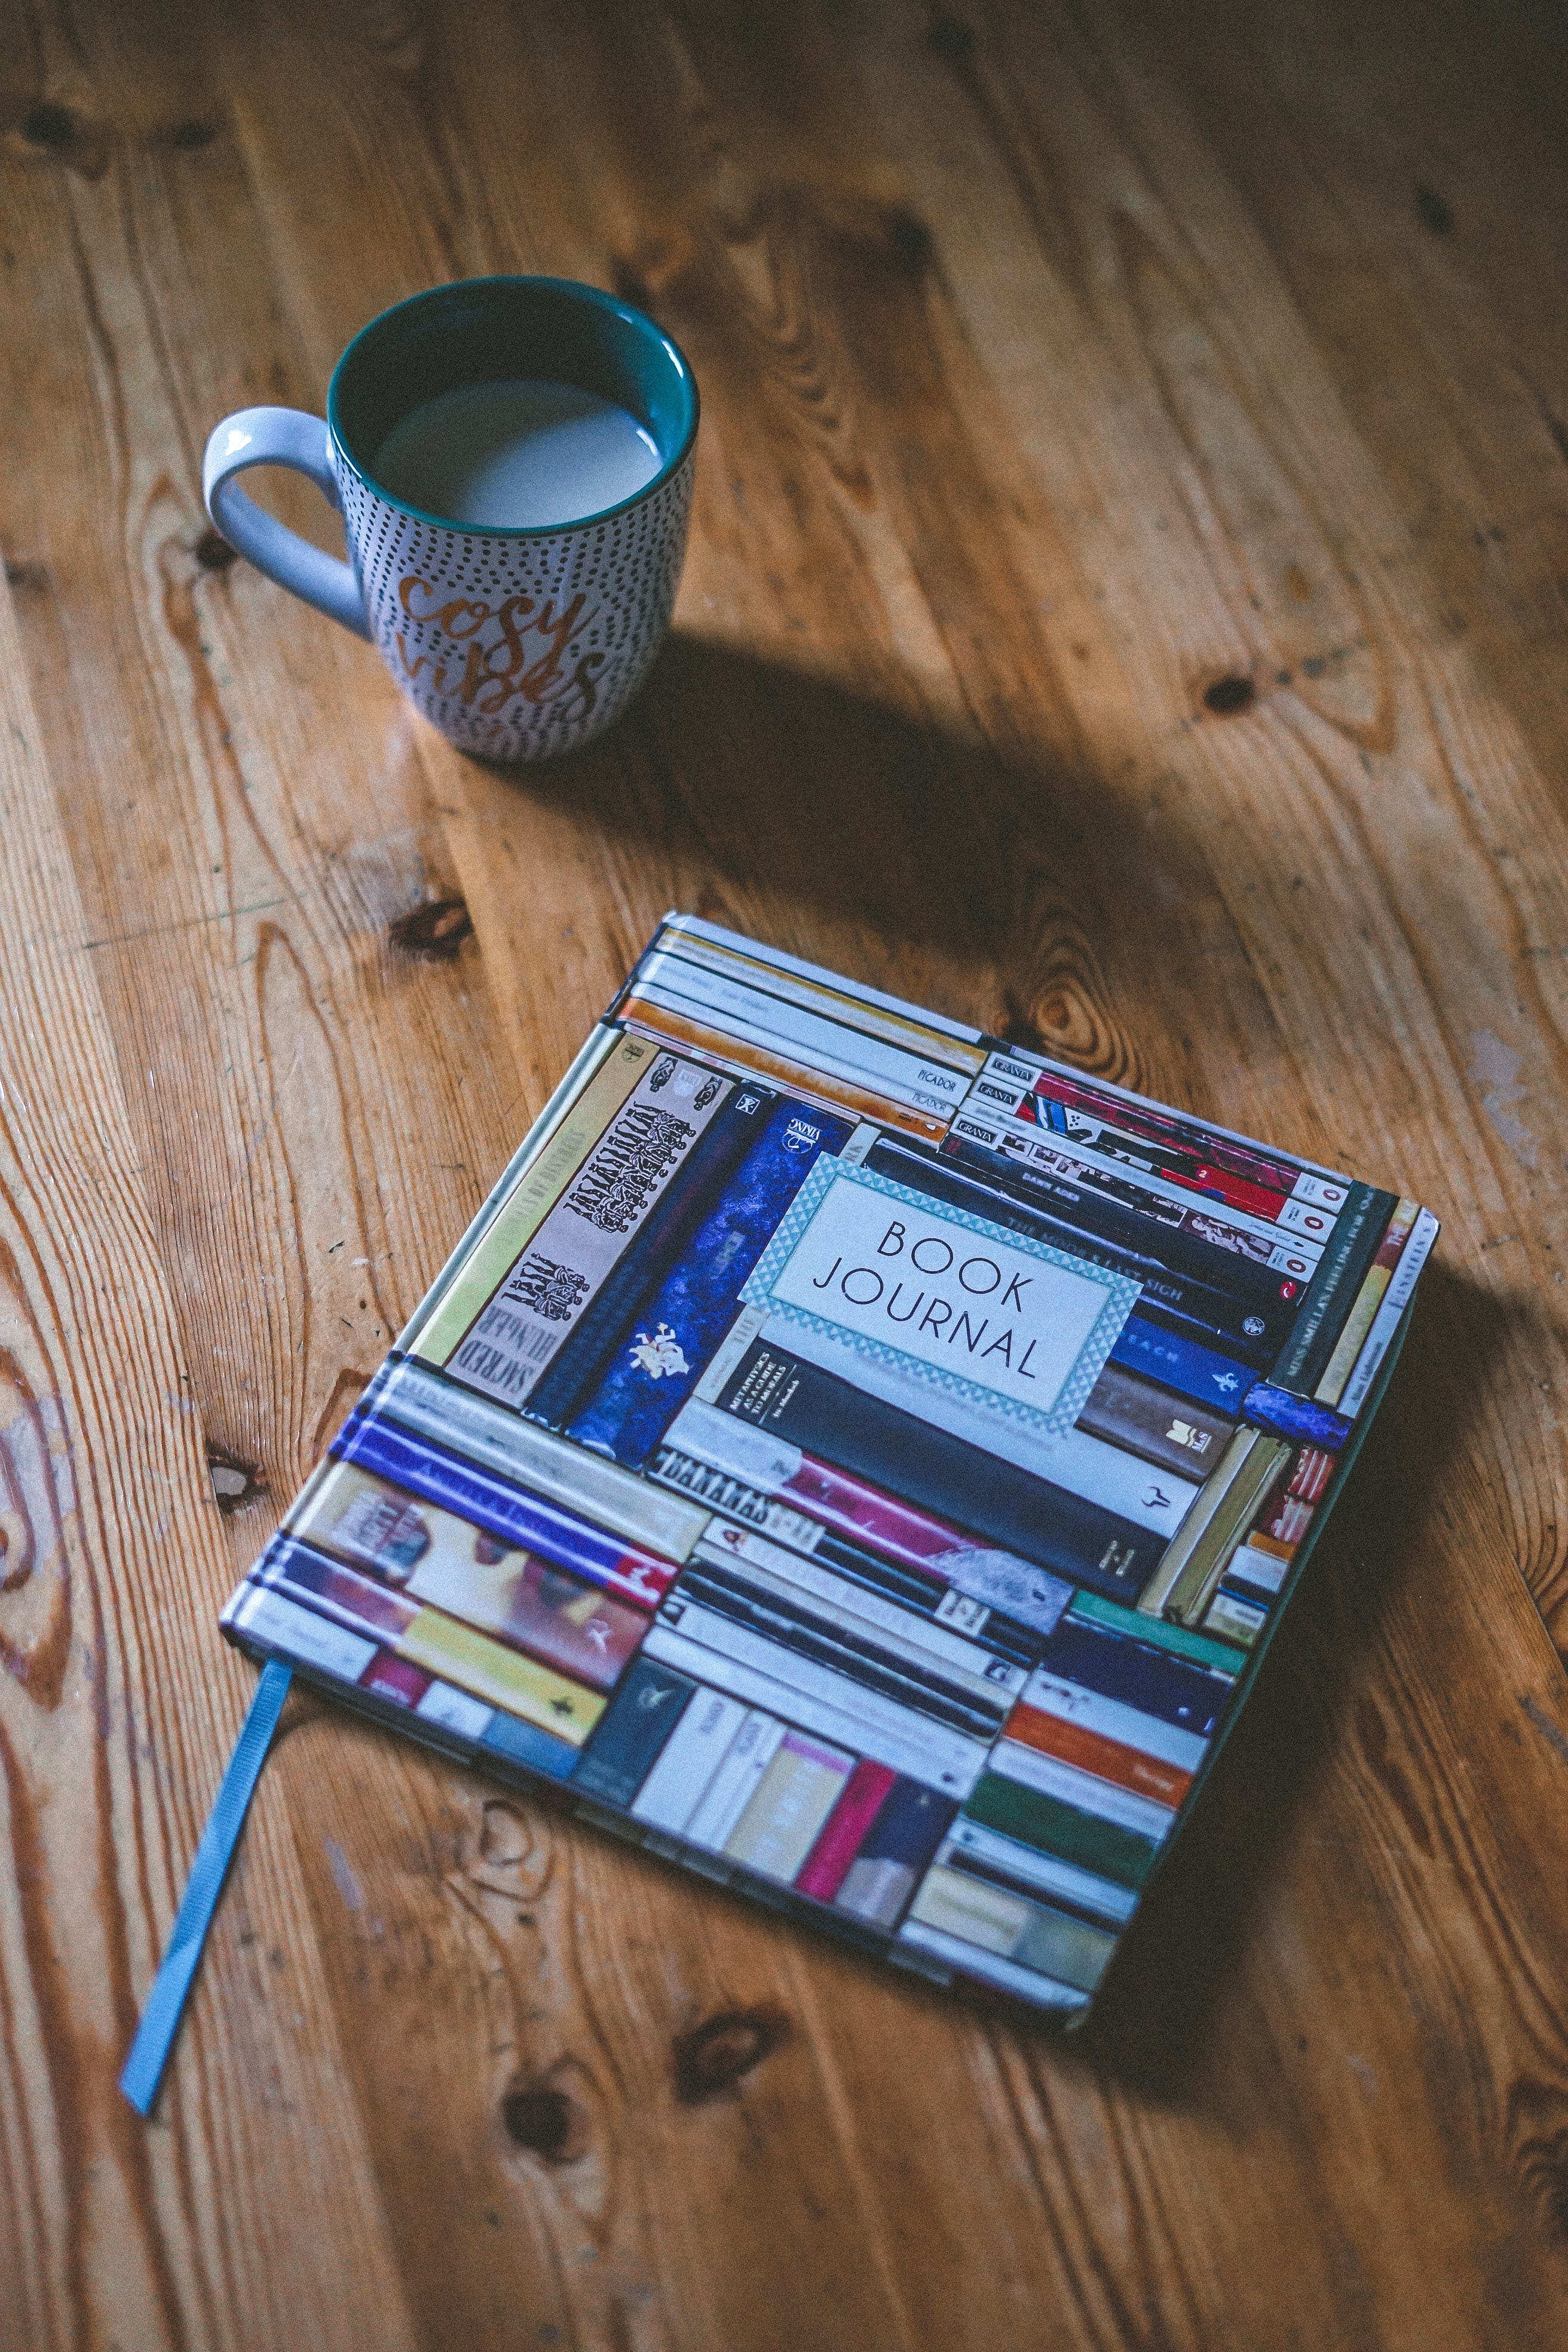 Book Journal near white and multicolored ceramic mug on wooden surface